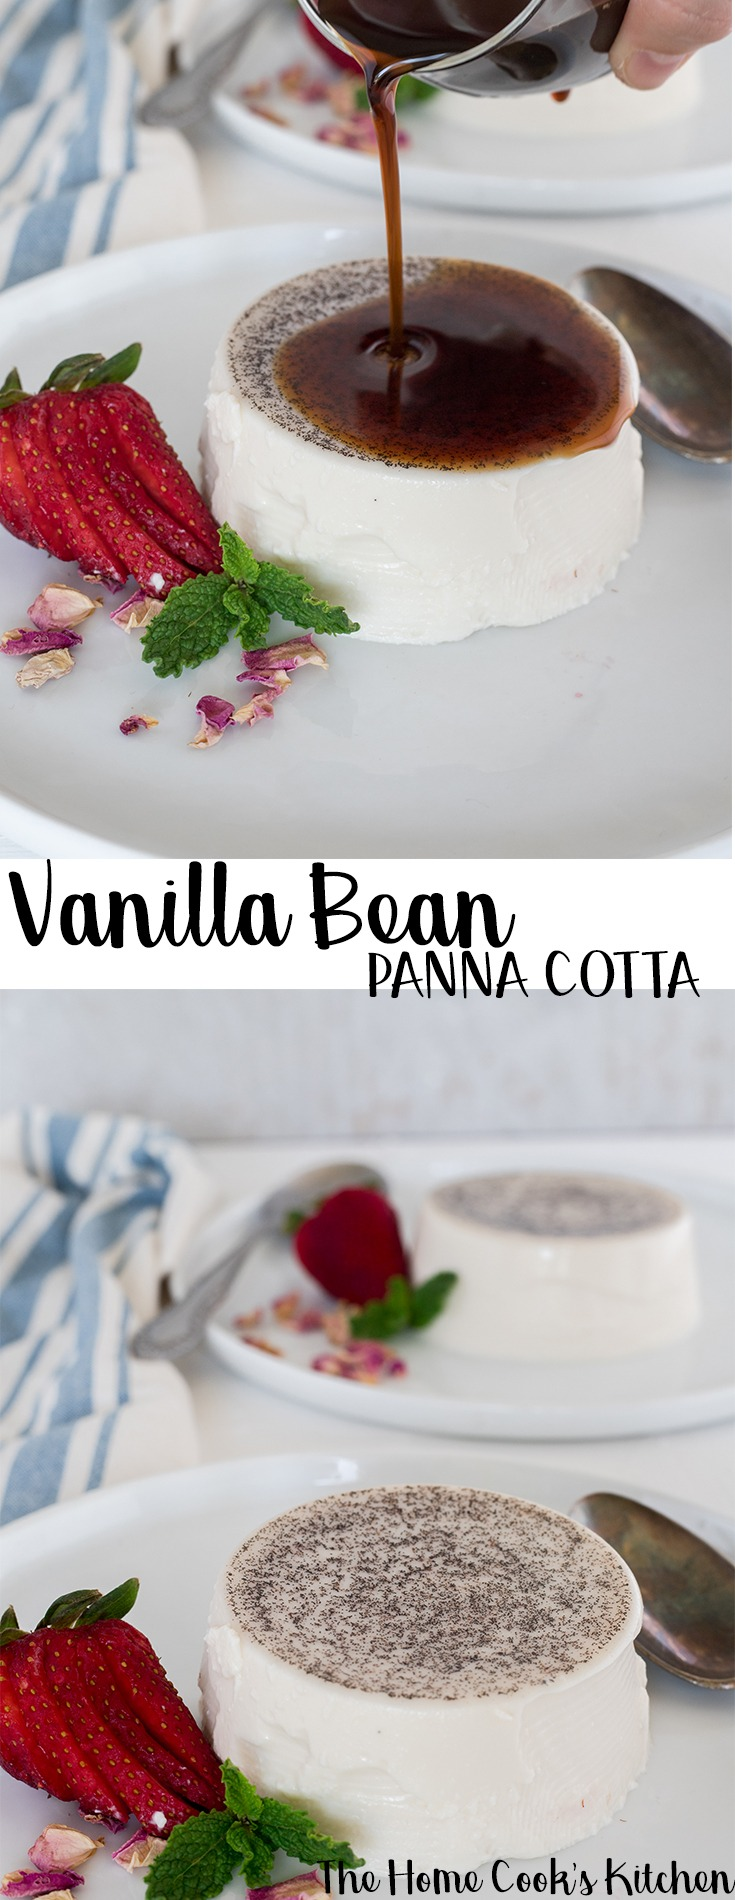 A creamy vanilla bean panna cotta with the most beautiful smoothy espresso syrup! This vanilla bean panna cotta is a great dessert to impress. Light, elegant, not too sweet and beautifully smooth #pannacotta #vanilla #dessert #vanillapannacotta